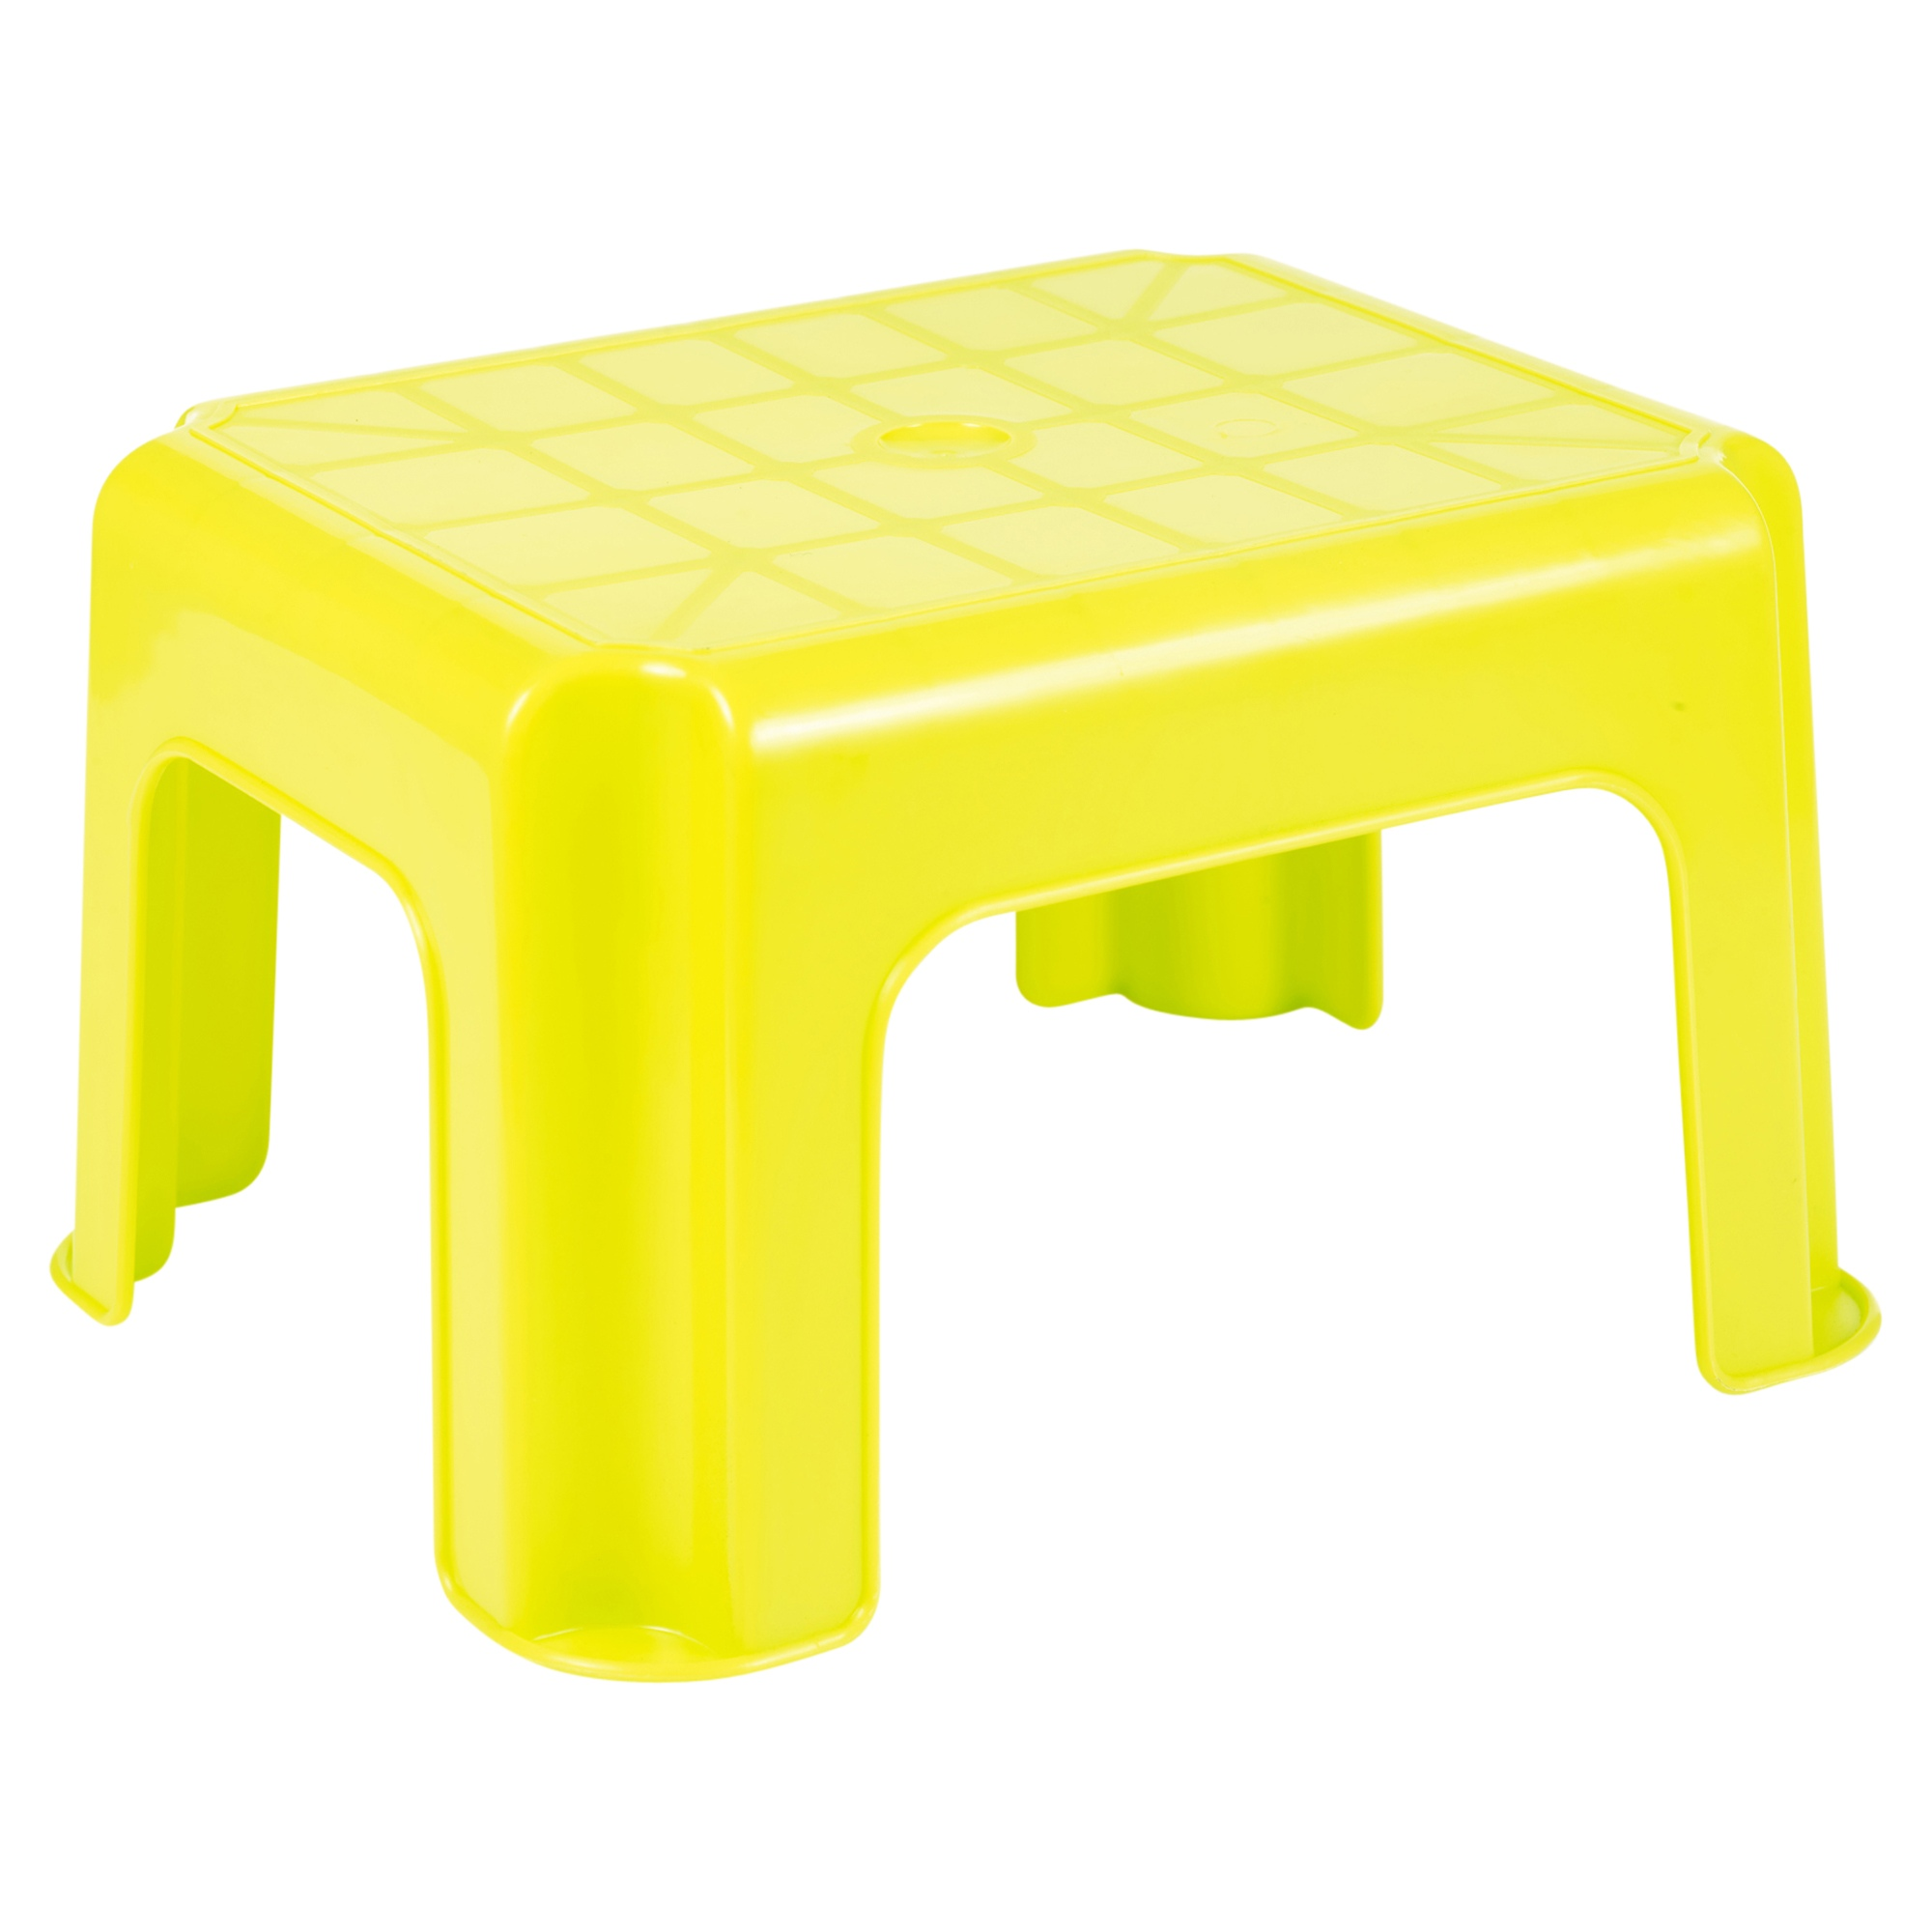 Enjoyable Details About Multi Purpose Sturdy Plastic Step Stool Stackable Kids Seat Anti Slip Foot High Ibusinesslaw Wood Chair Design Ideas Ibusinesslaworg